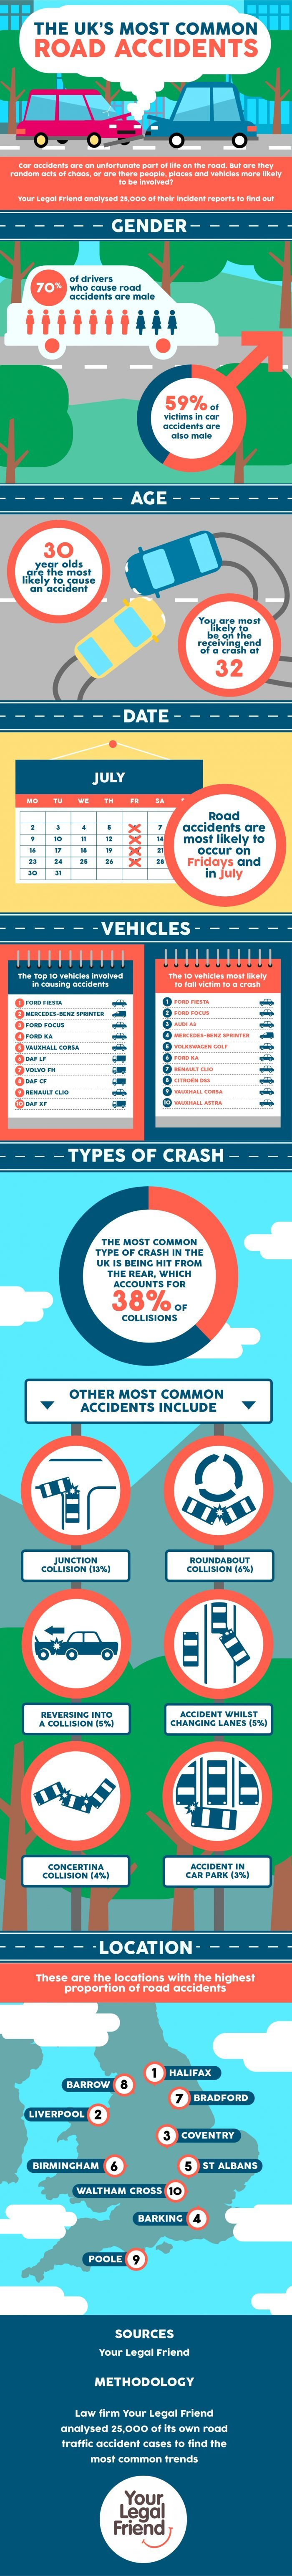 Most Common Road Accidents In The UK Your Legal Friend